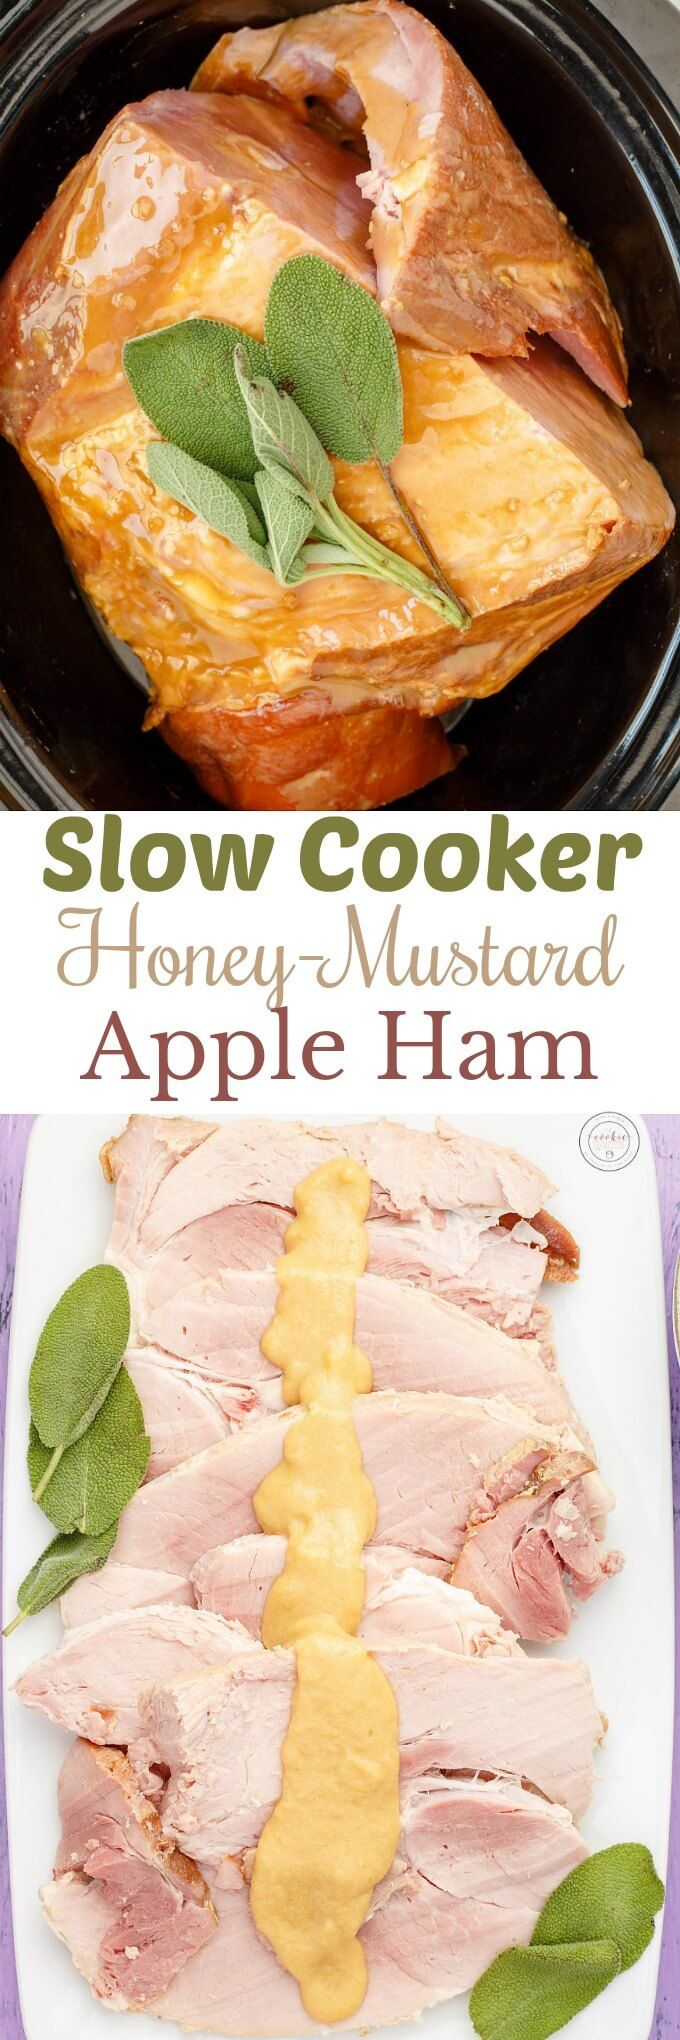 Slow Cooker Honey-Mustard Apple Ham | http://thecookiewriter.com | @thecookiewriter | Easy bone in ham recipe that is completed in the crock pot! No pineapple or brown sugar found here! Completely gluten-free, relatively healthy, and perfect for Thanksgiving, Christmas, and Easter! Plus, use that leftover bone to make soup! Boneless ham will work perfectly here, and the apples are pureed down to make a nice gravy!